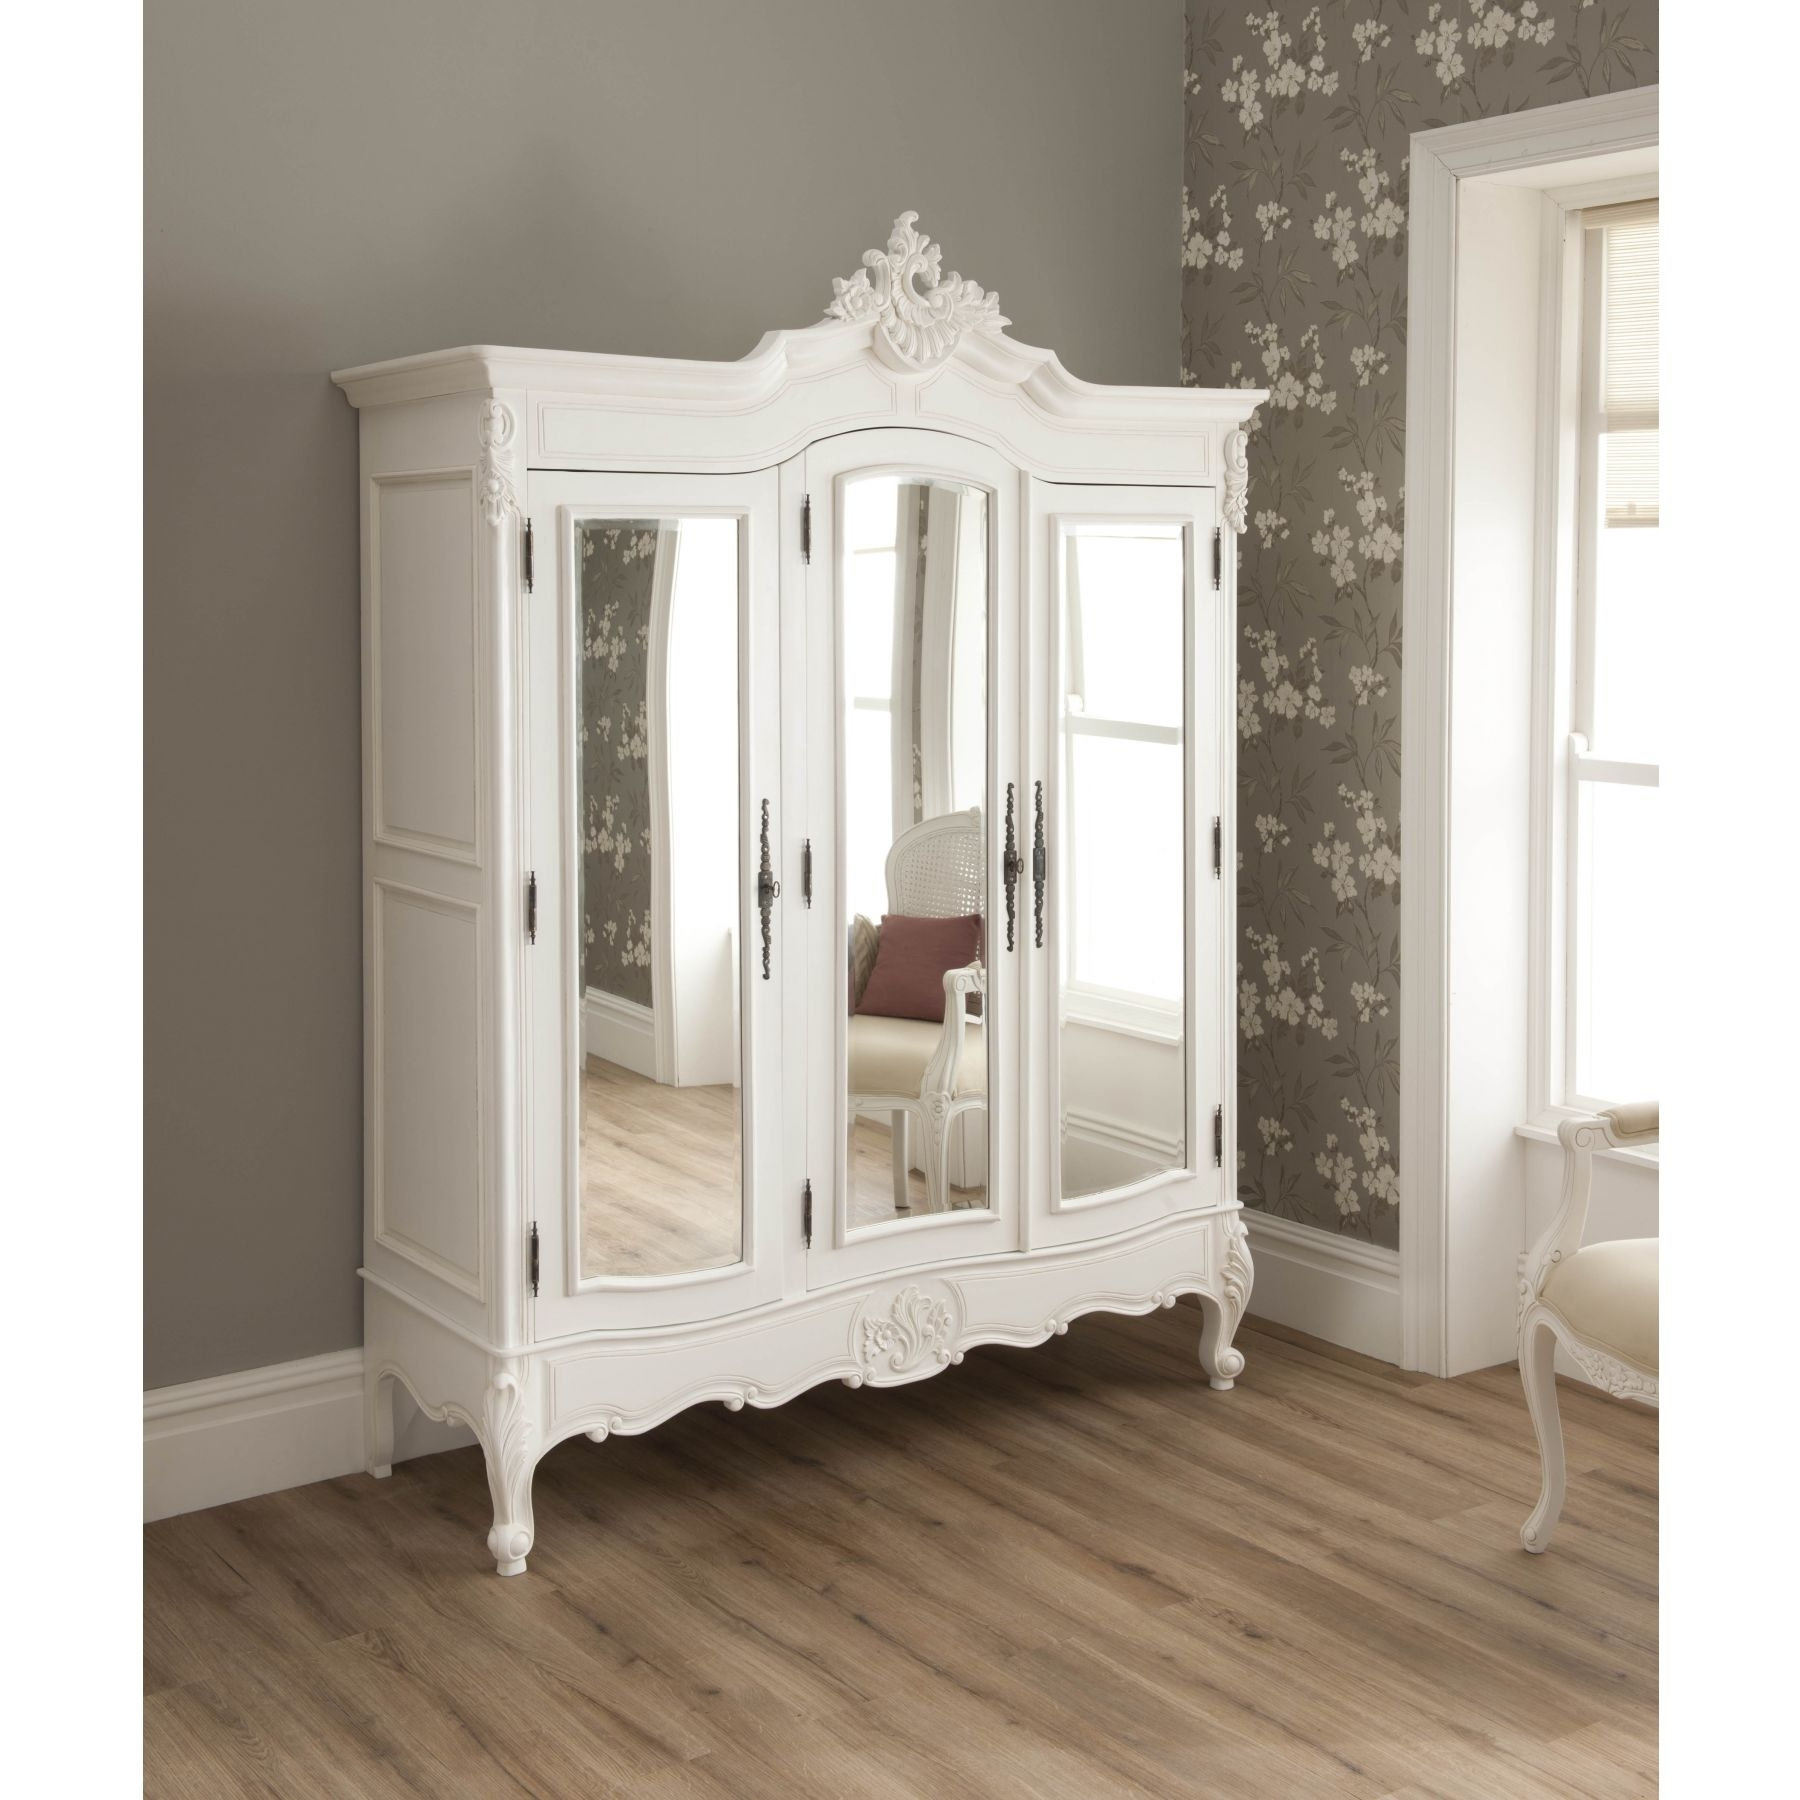 Shabby Chic Furniture Regarding Famous Industrial Style Wardrobes (View 11 of 15)